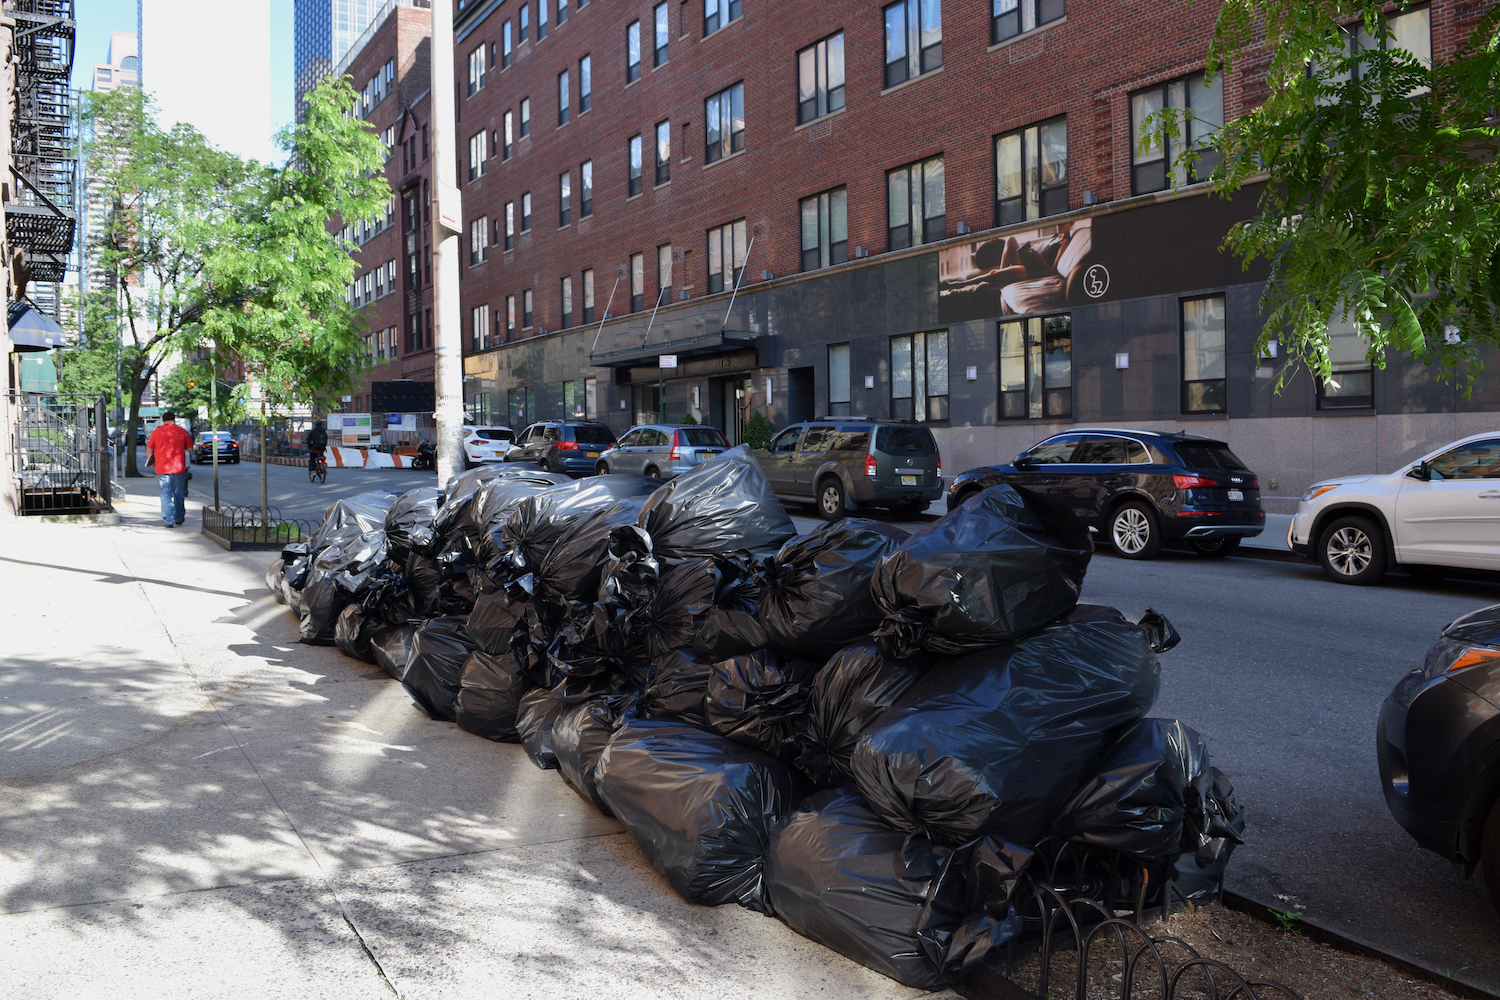 NYC was voted one of the top three dirtiest cities in the world